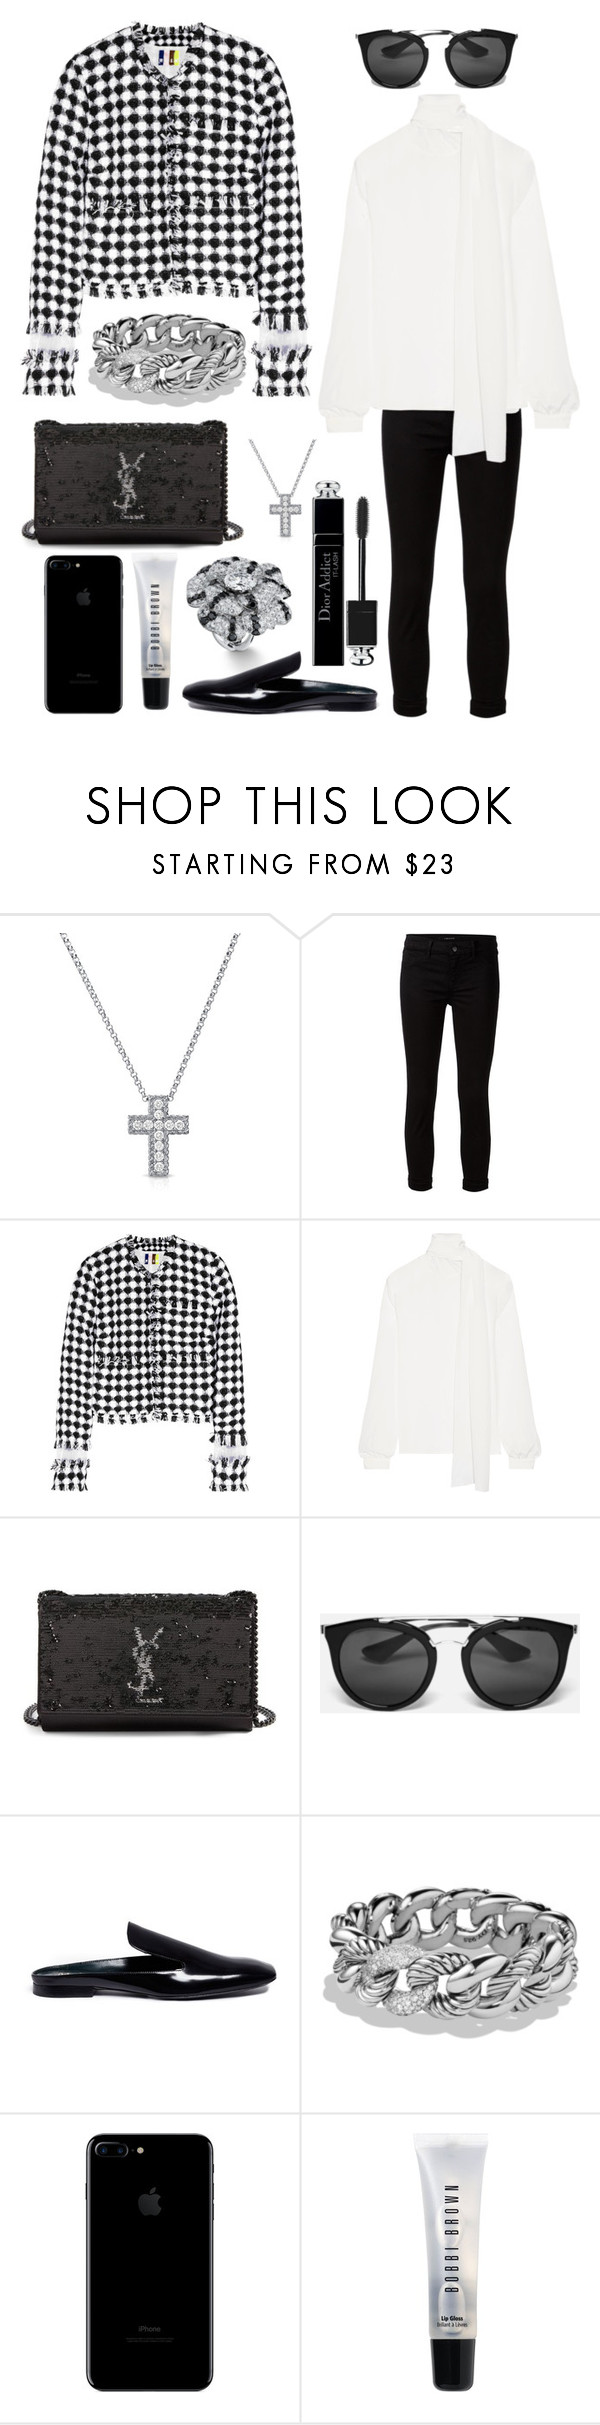 """The world is yours 🌎"" by theodor44444 ❤ liked on Polyvore featuring Roberto Coin, J Brand, MSGM, Yves Saint Laurent, Prada, Mulberry, David Yurman, Bobbi Brown Cosmetics and Christian Dior"